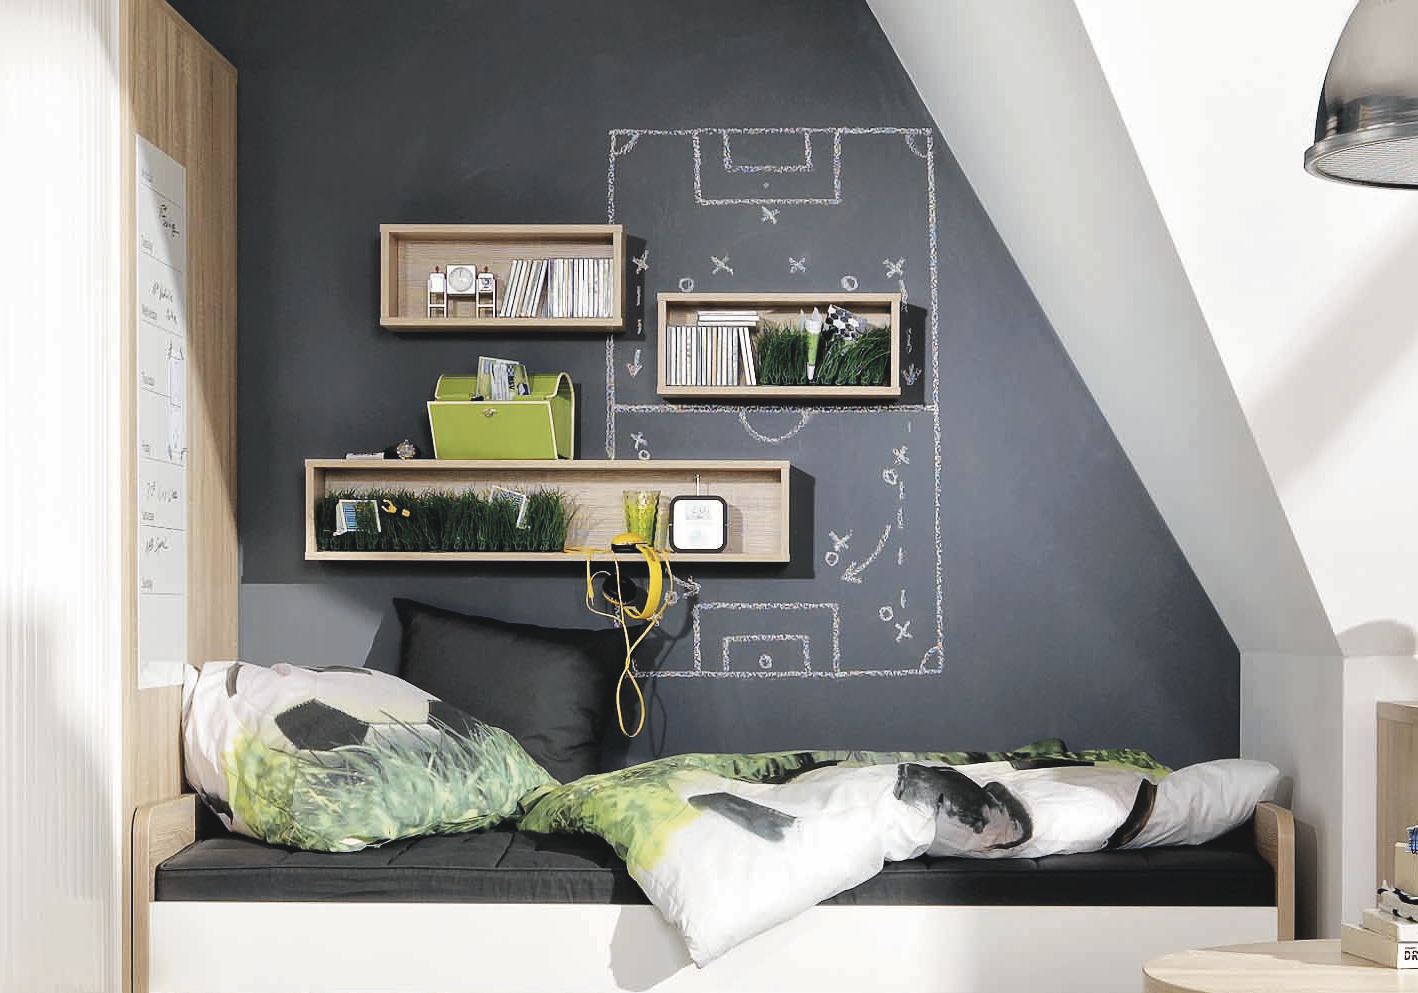 tafelfarbe im jugendzimmer definitiv eine coole idee. Black Bedroom Furniture Sets. Home Design Ideas